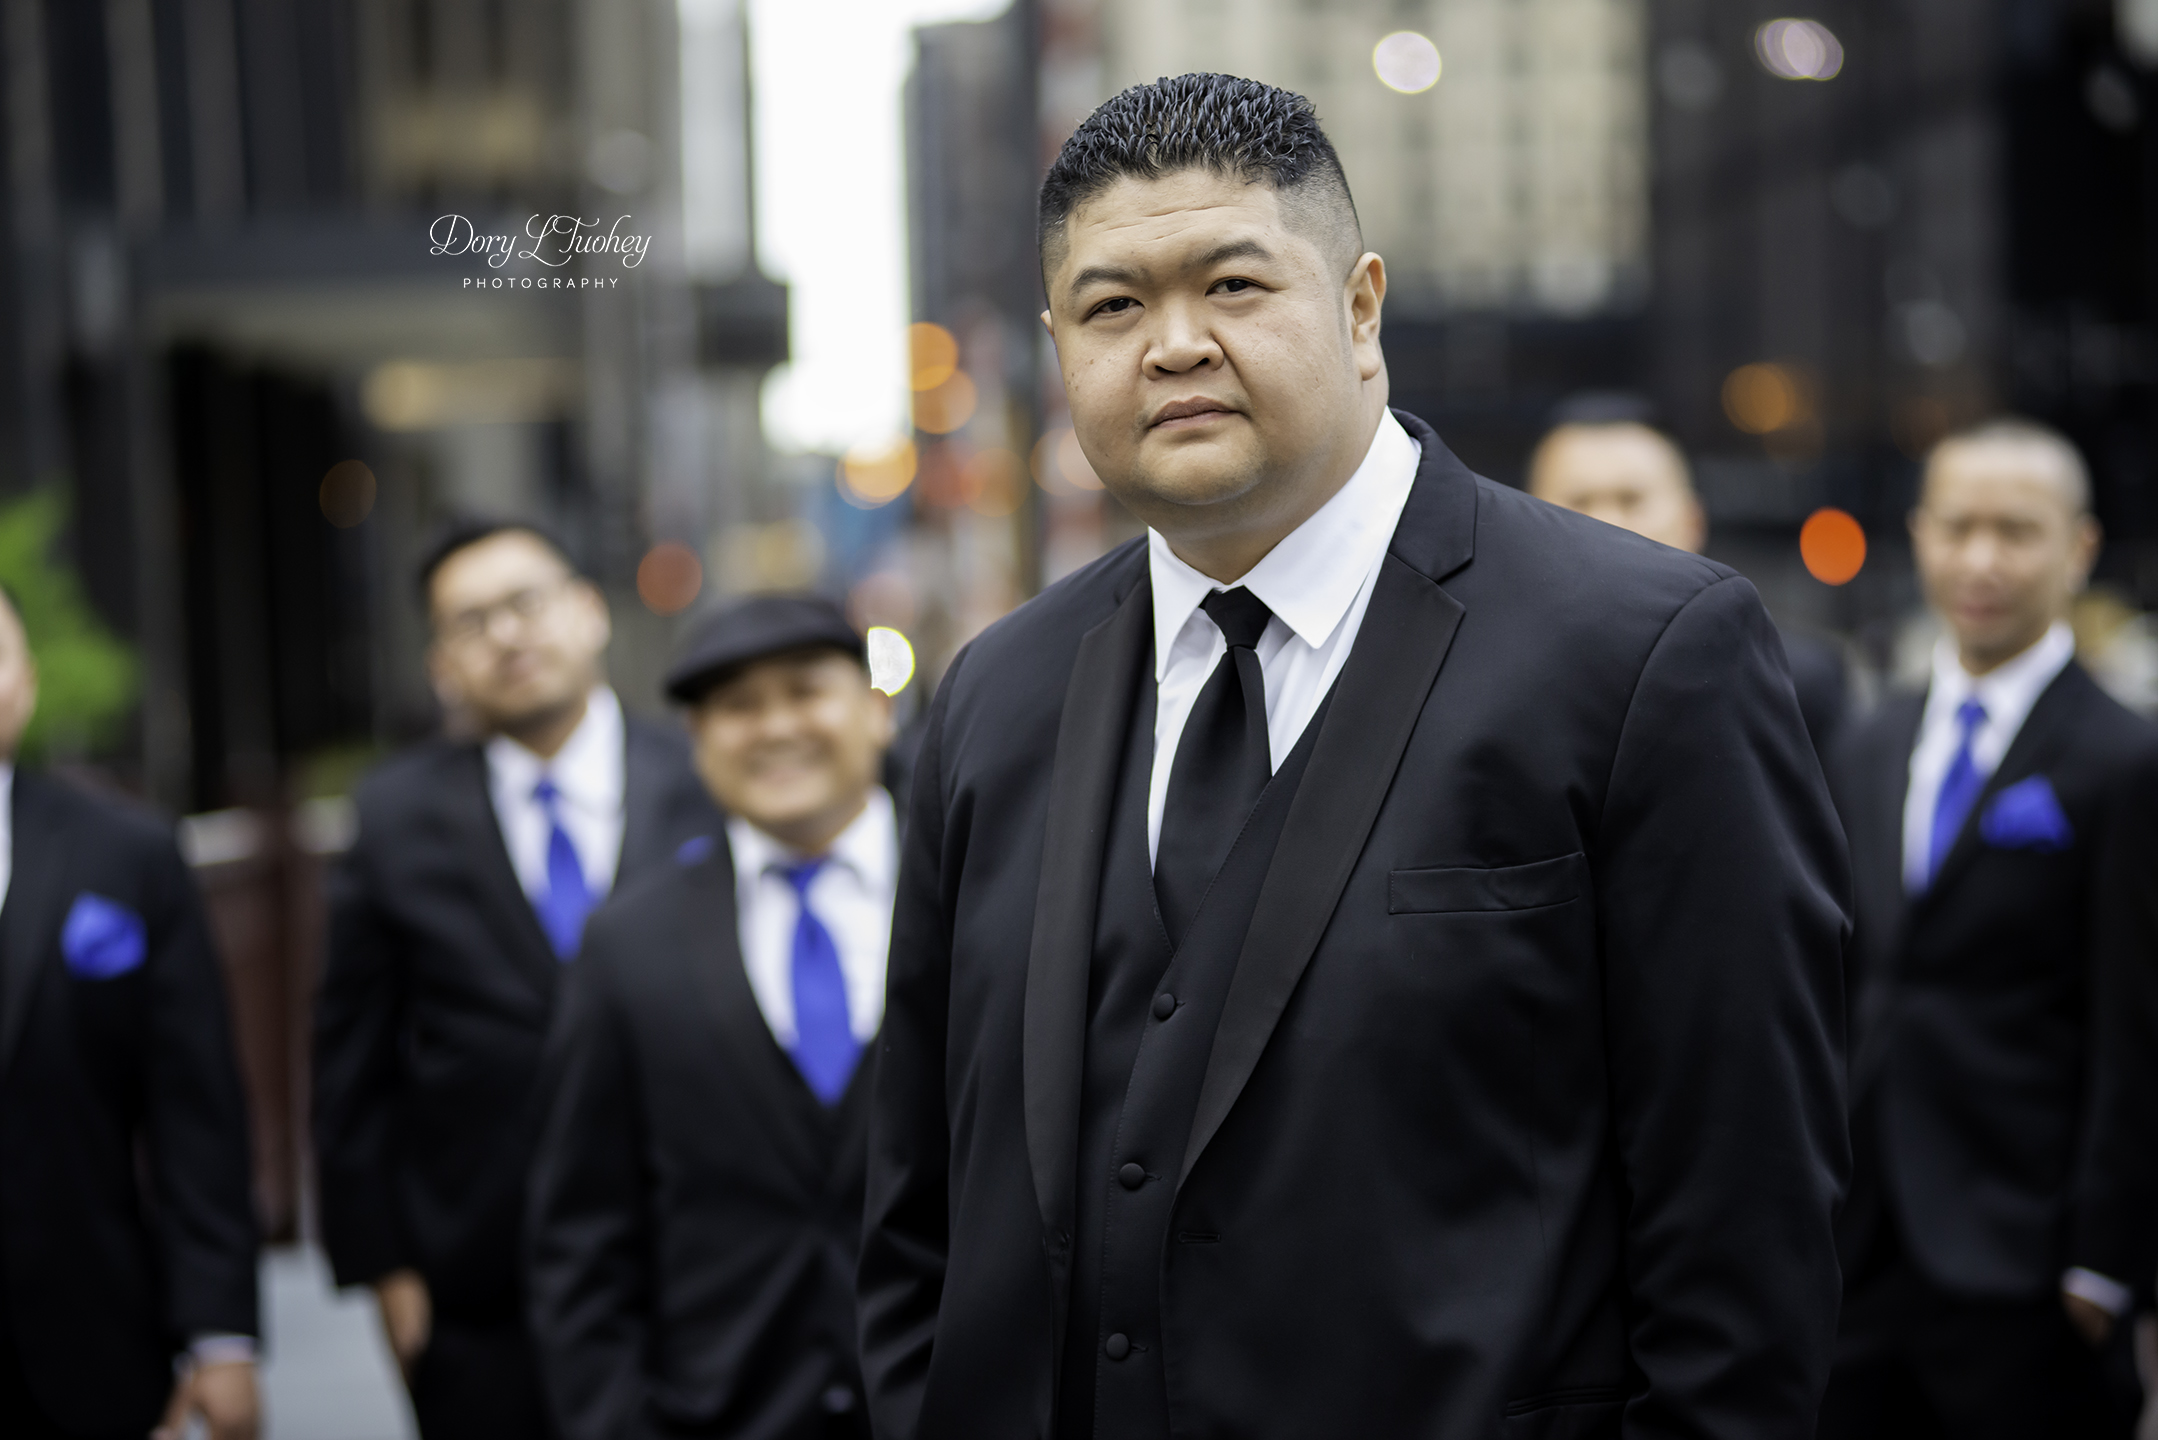 Chicago_wedding_photographer_bride_union_station_laos_thai_dory_09.jpg